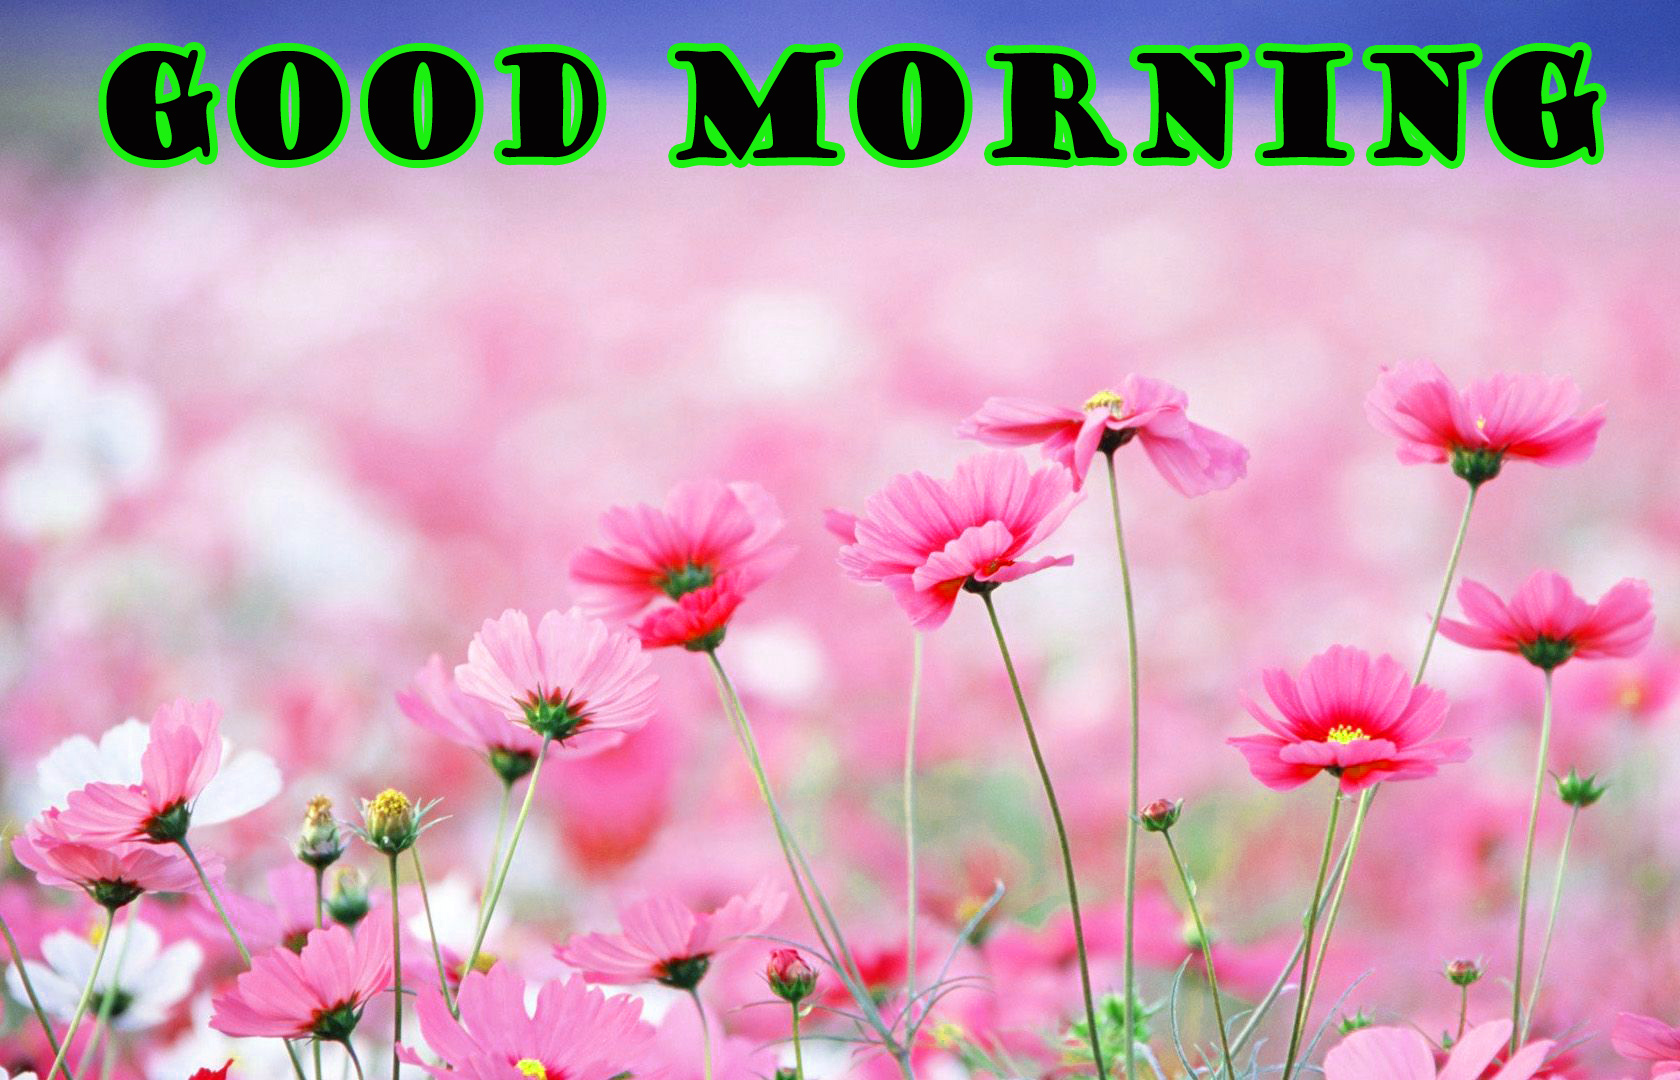 गुड मॉर्निंग New Wonderful Good Morning Images Photo Wallpaper Download